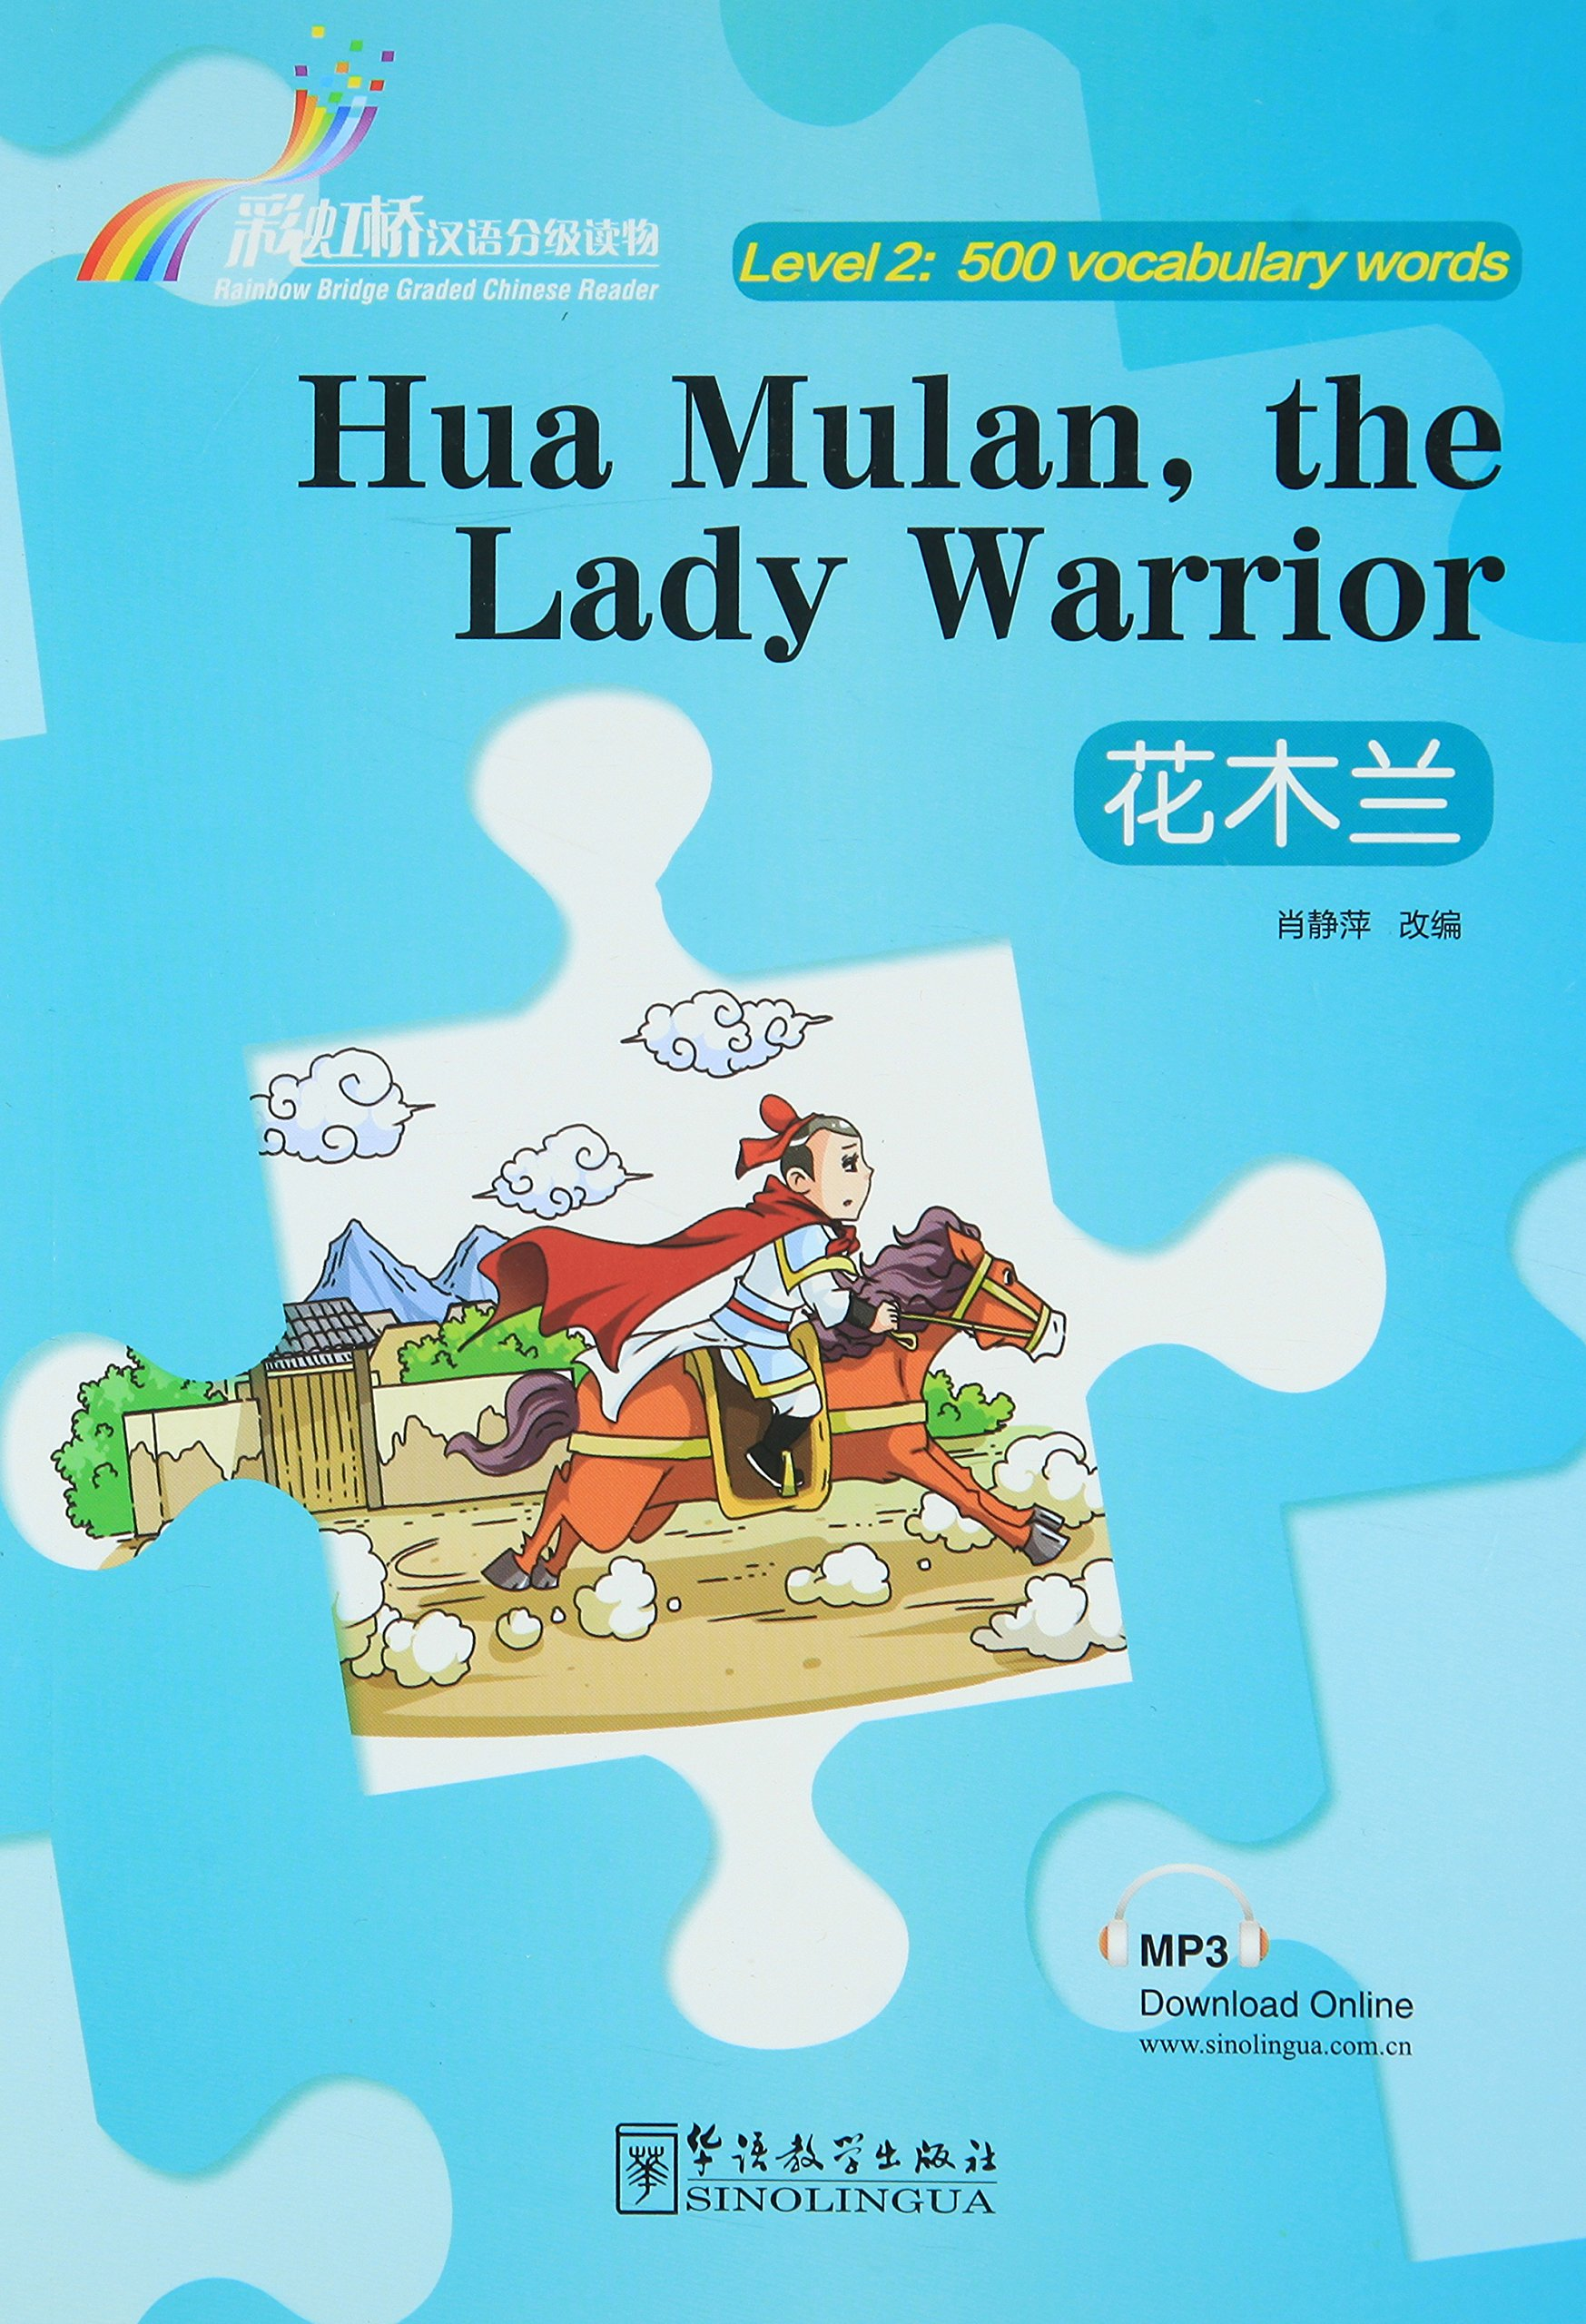 Hua Mulan,the Lady Warrior - Rainbow Bridge Graded Chinese Reader, Level 2: 500 Vocabulary Words